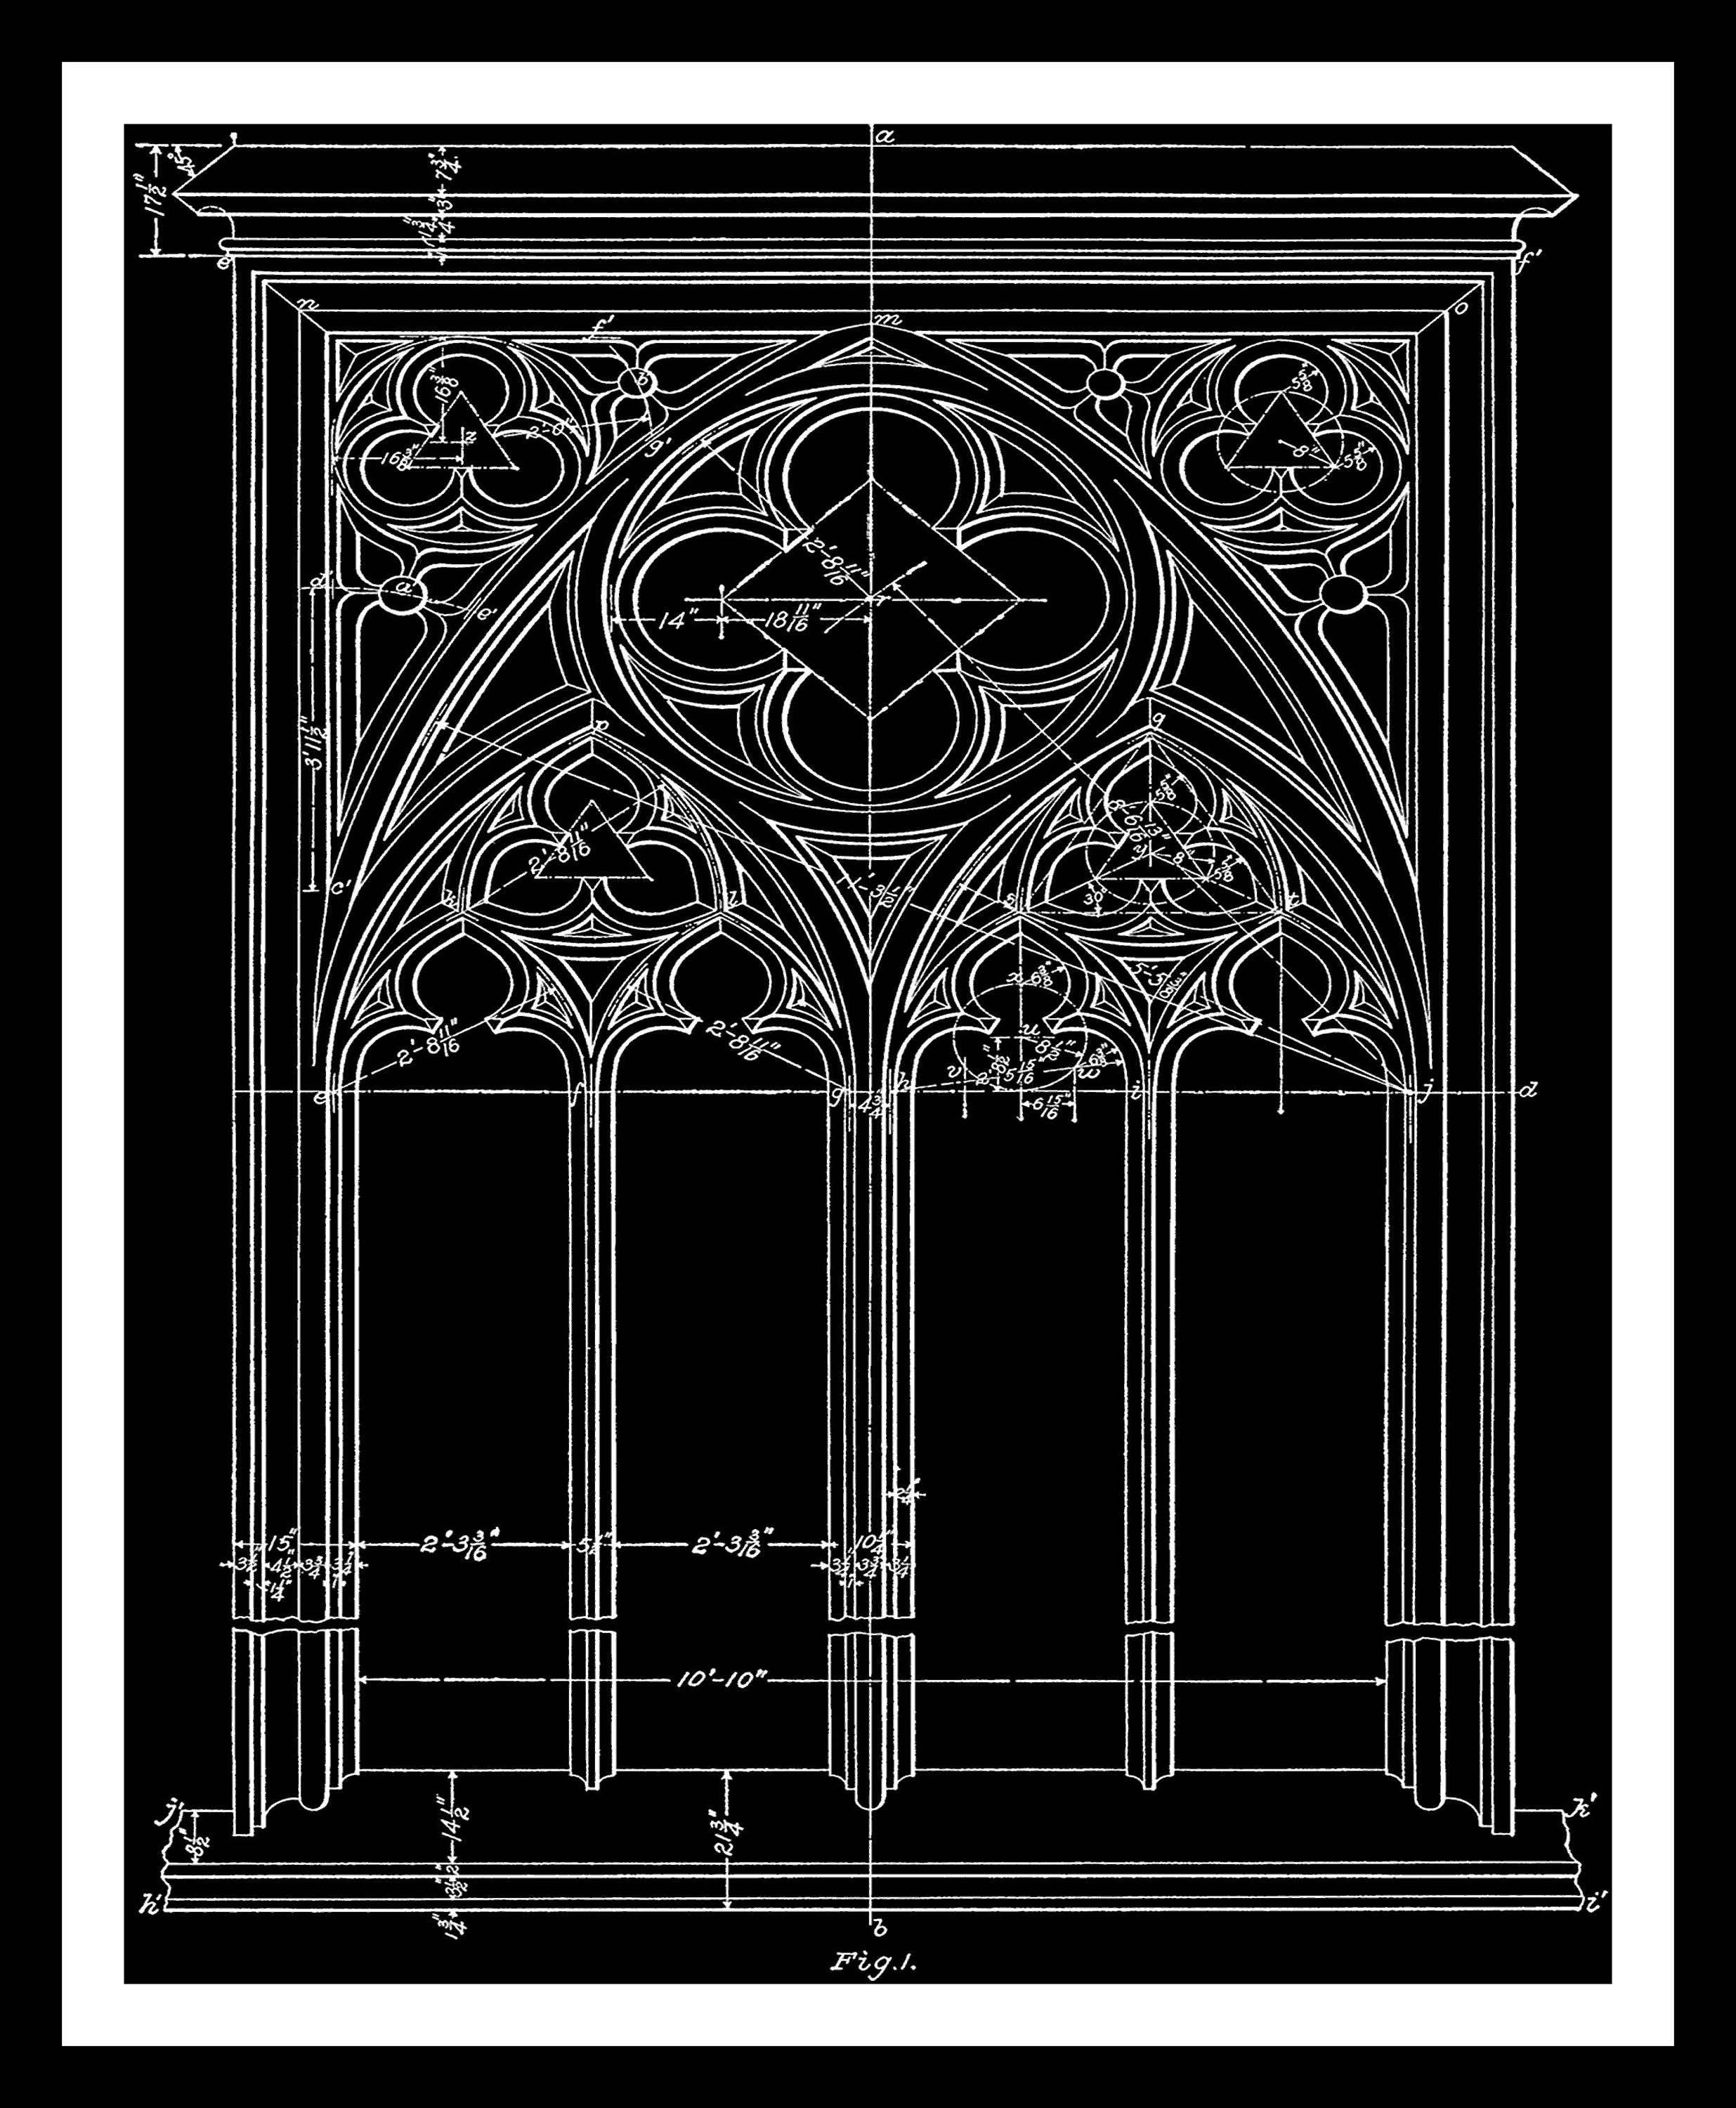 Window blueprint in black architecture gothic architectural wall window blueprint in black architecture gothic architectural wall decor window drawing architectural print craft art instant download malvernweather